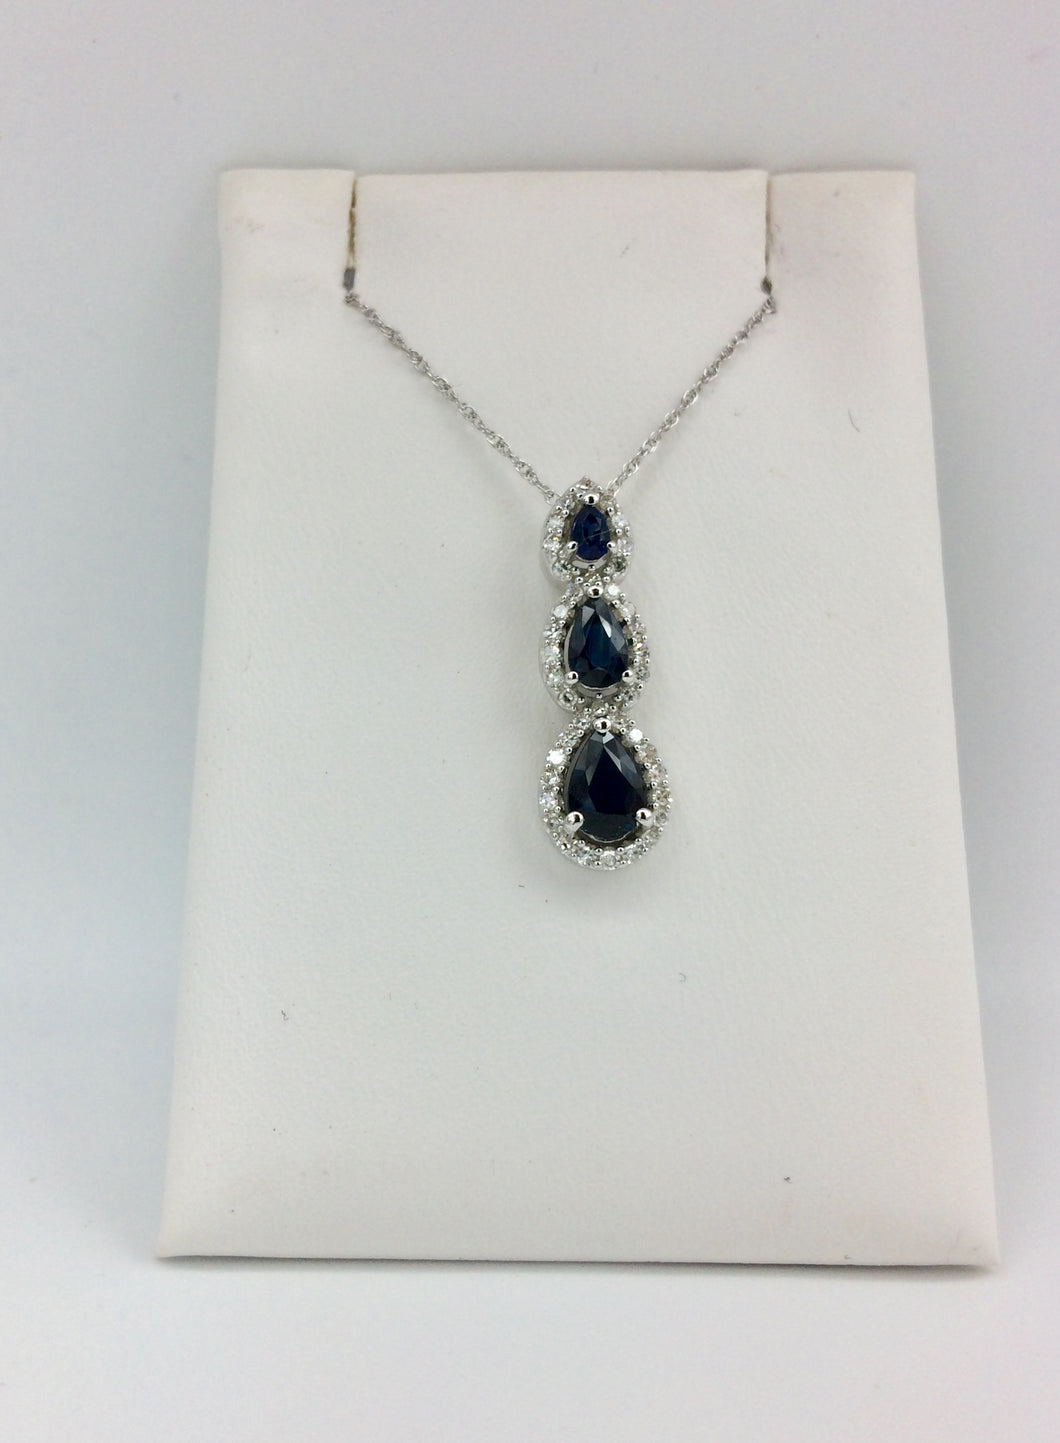 10K White Gold Sapphire Necklace